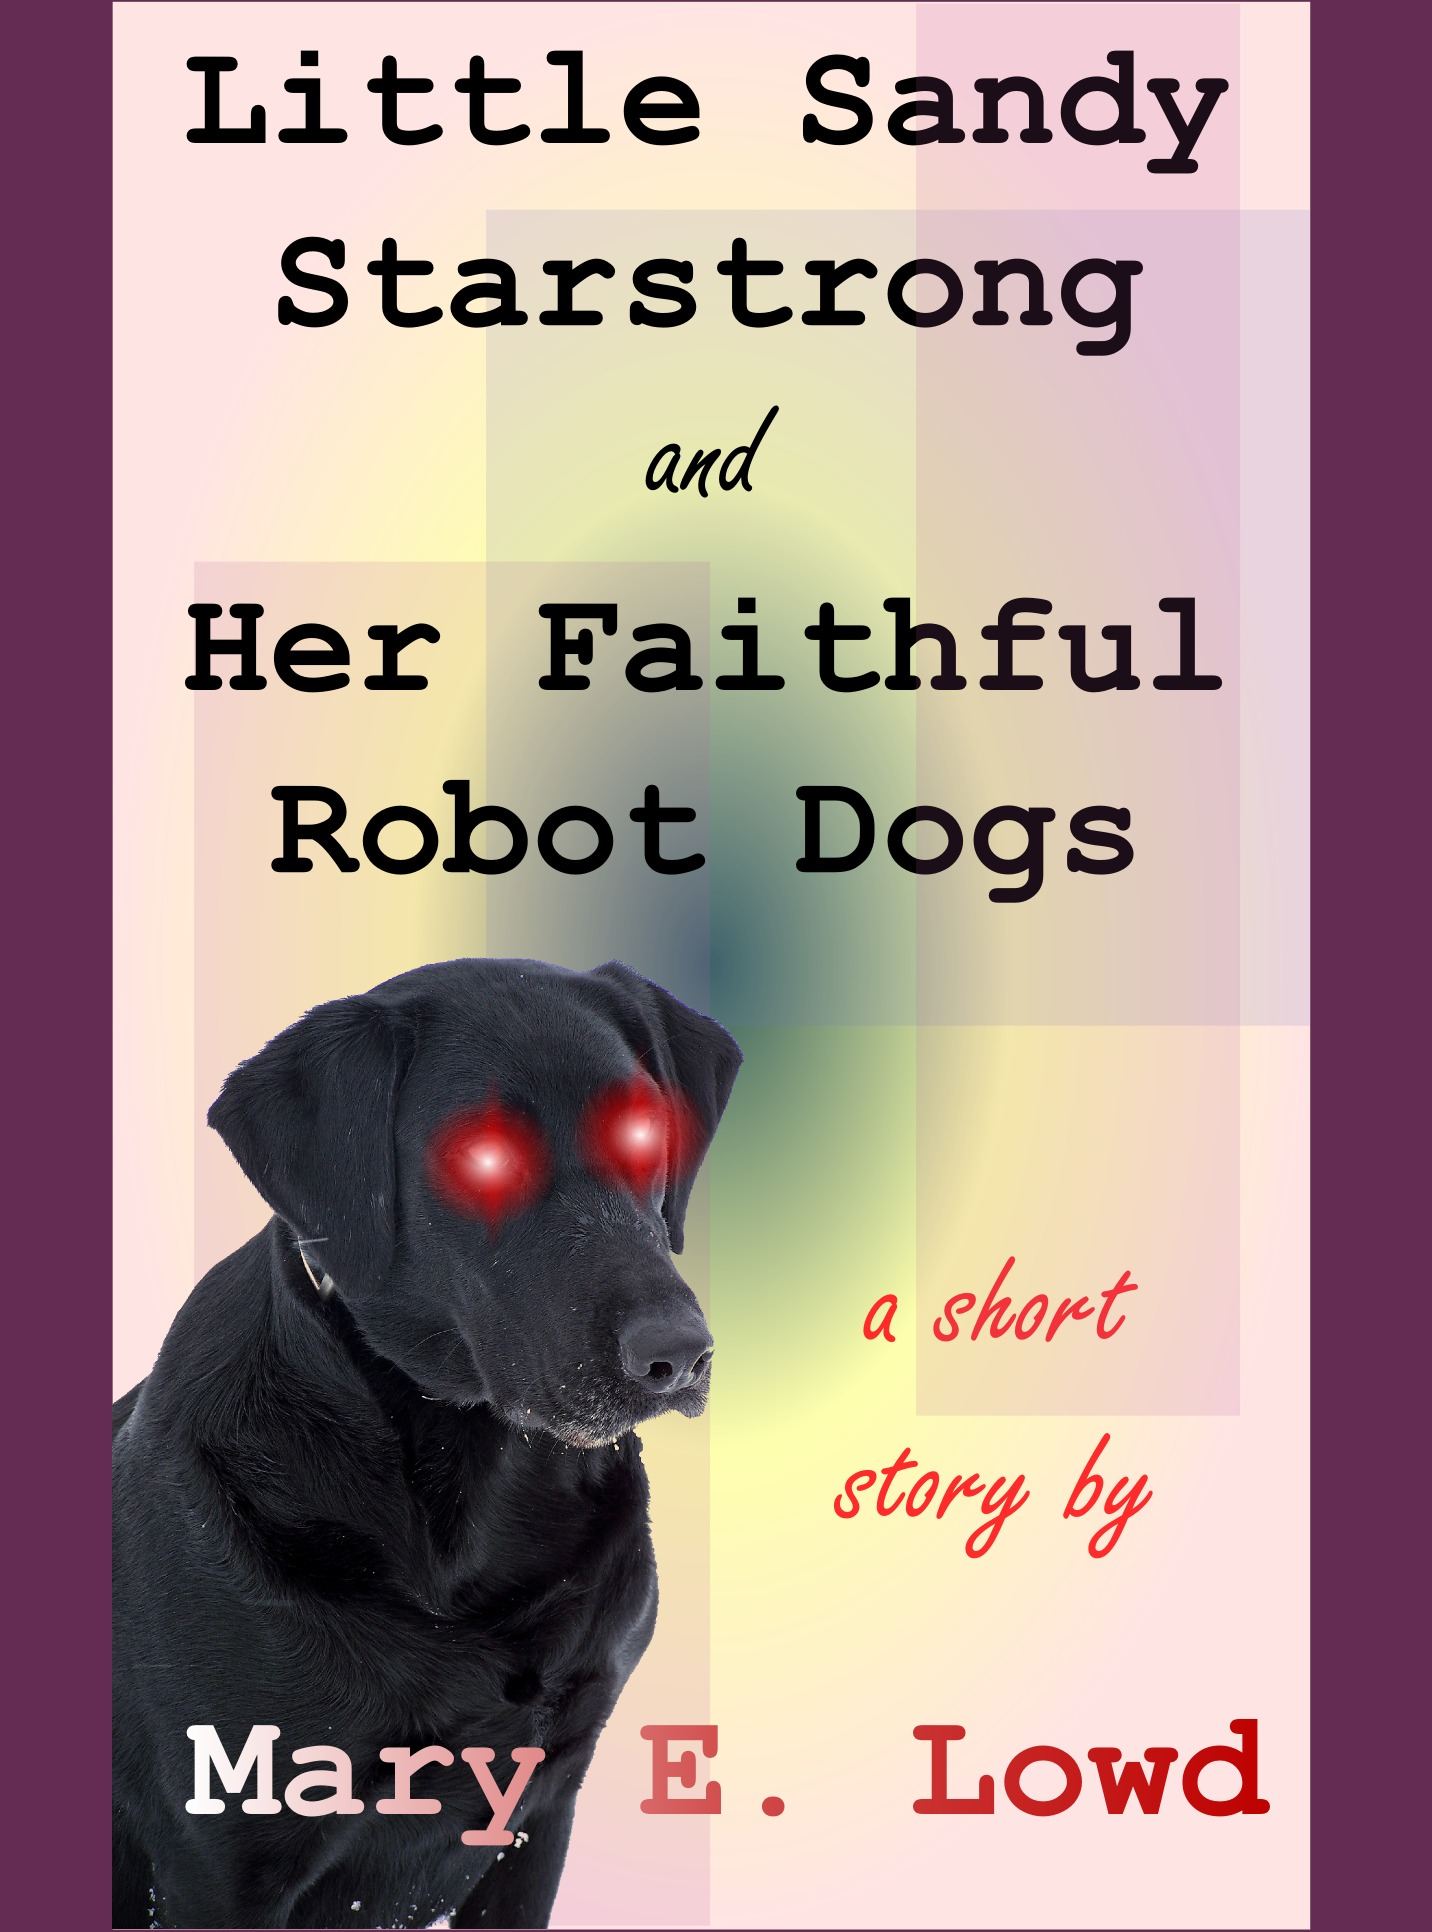 Little Sandy Starstrong and Her Faithful Robot Dogs